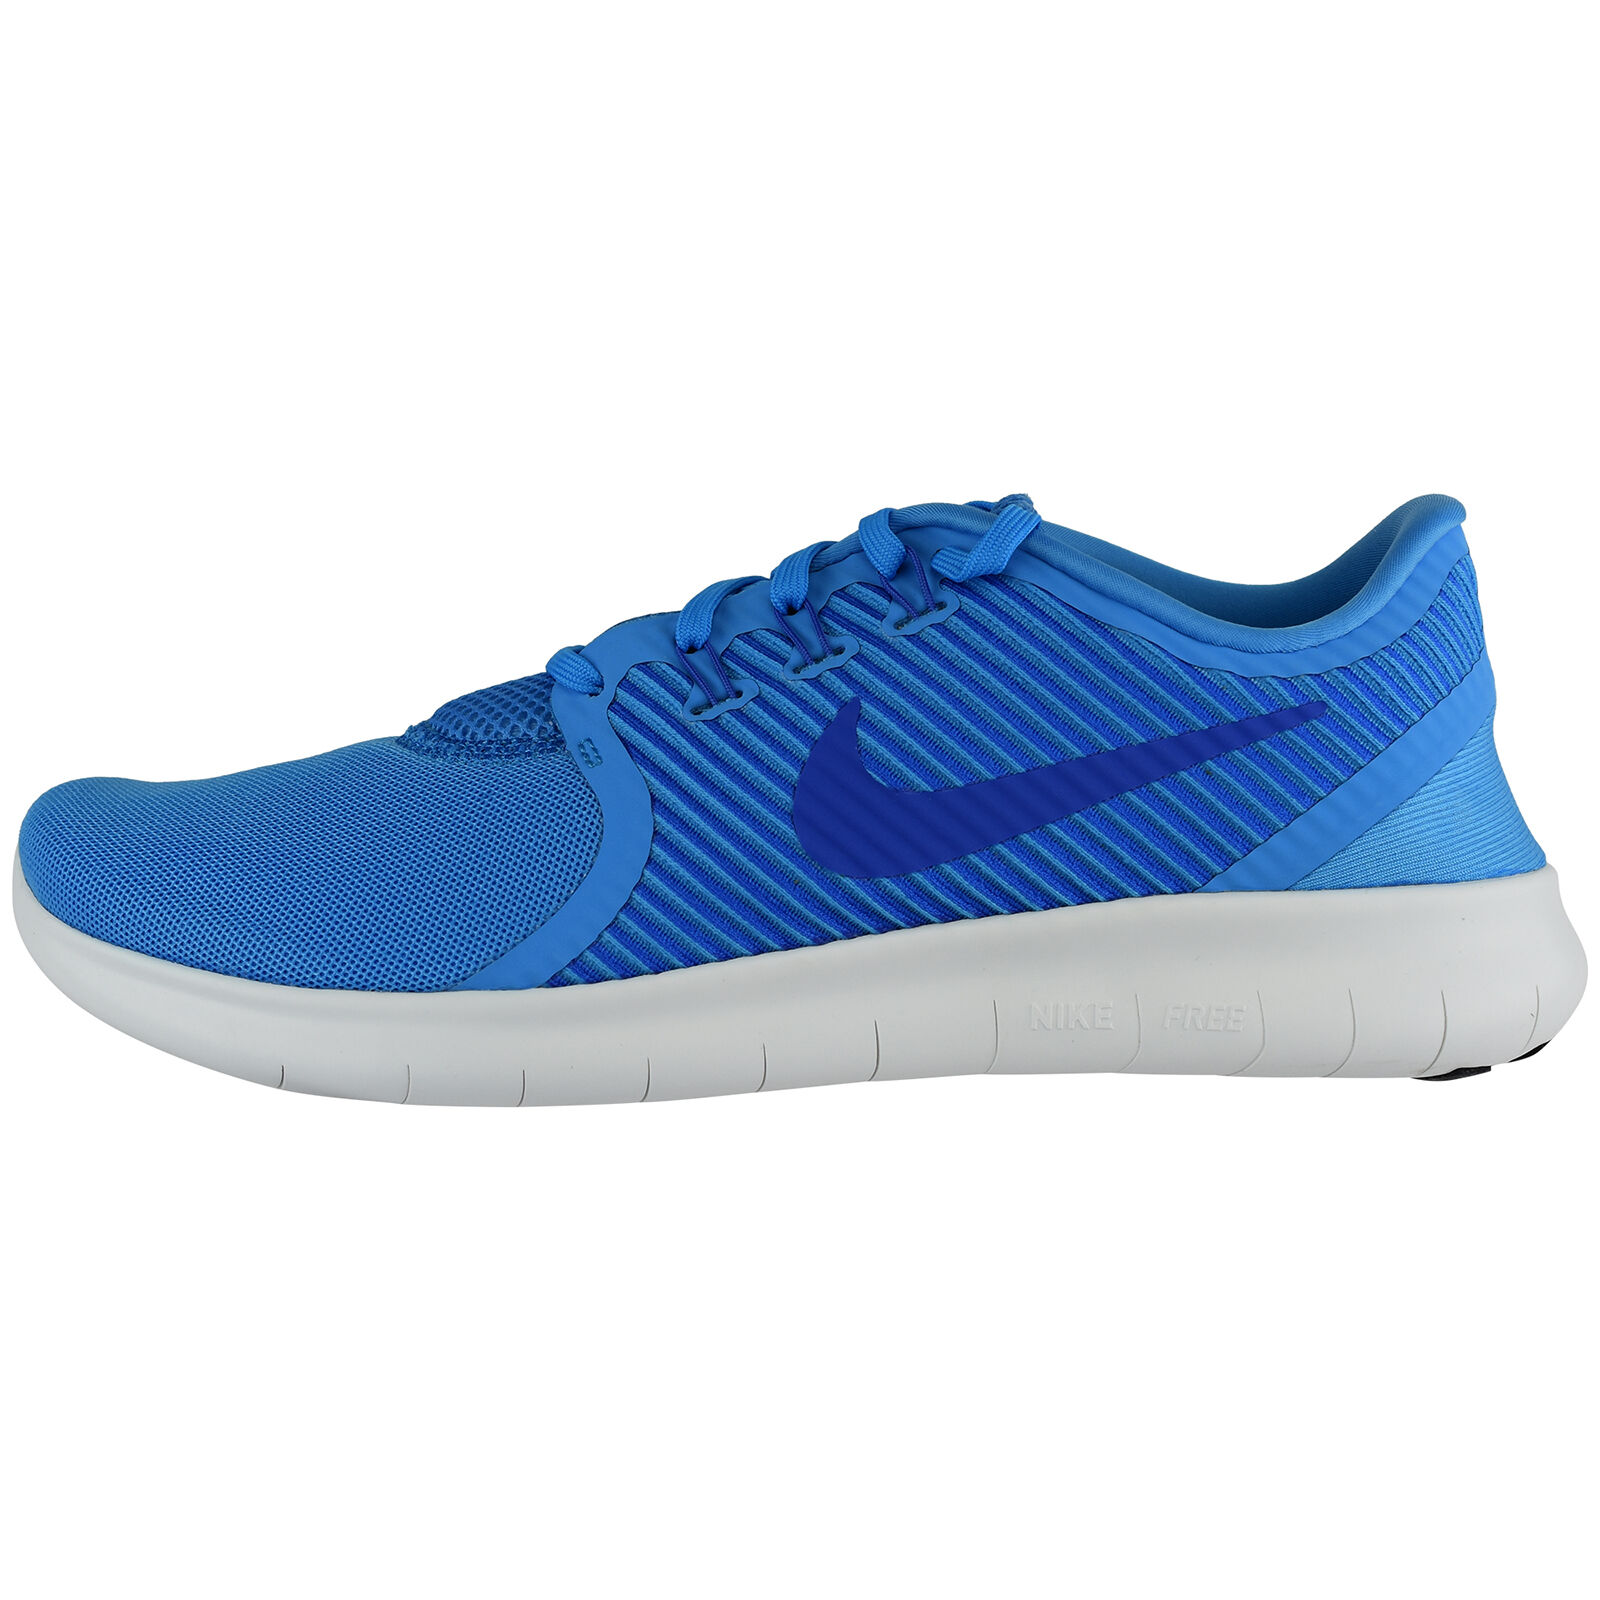 Nike Free rn cmtr casuales 831510-400 calles zapatos zapatillas zapatos casuales cmtr zapatillas d626e3